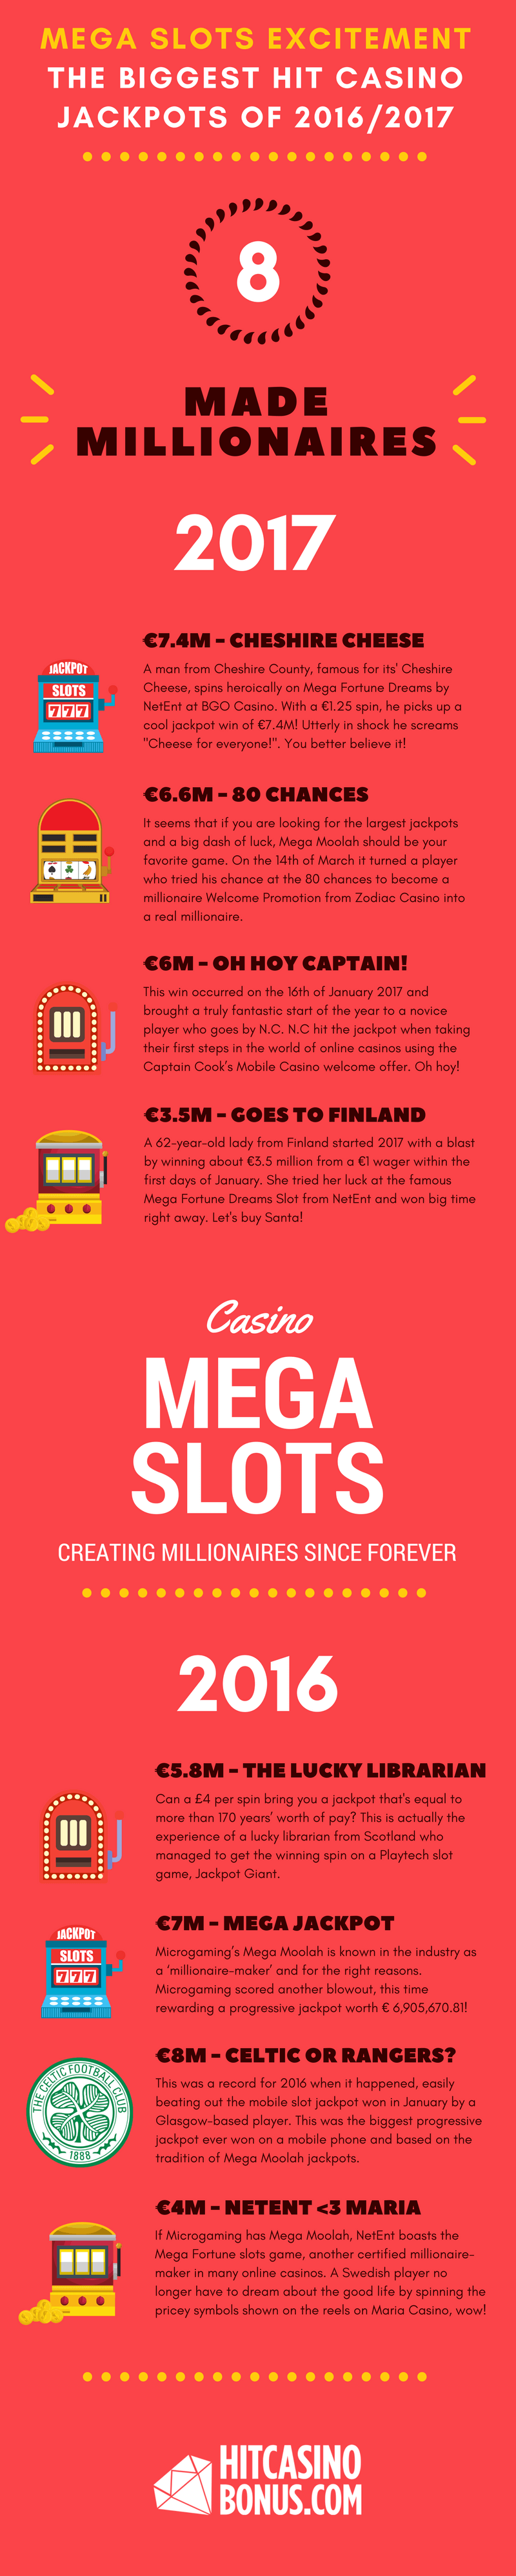 Mega Slots Excitement – The 8 Biggest Hit Casino Jackpots of 2016 & 2017